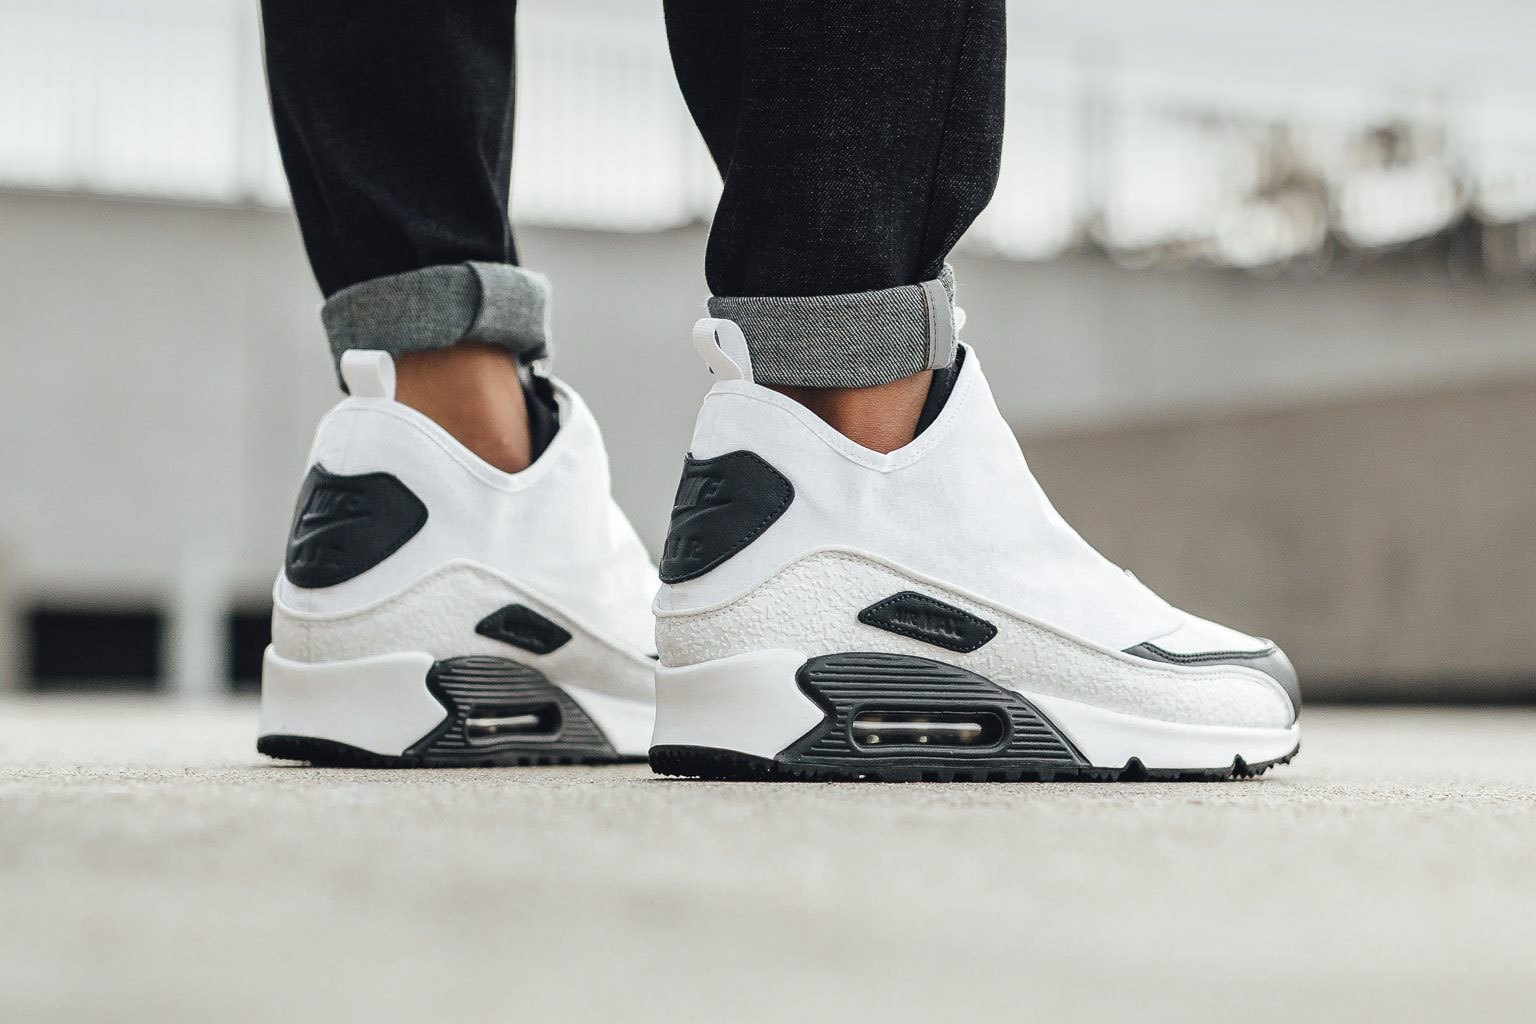 La version blanche de la Nike Air Max 90 Utility désormais disponible